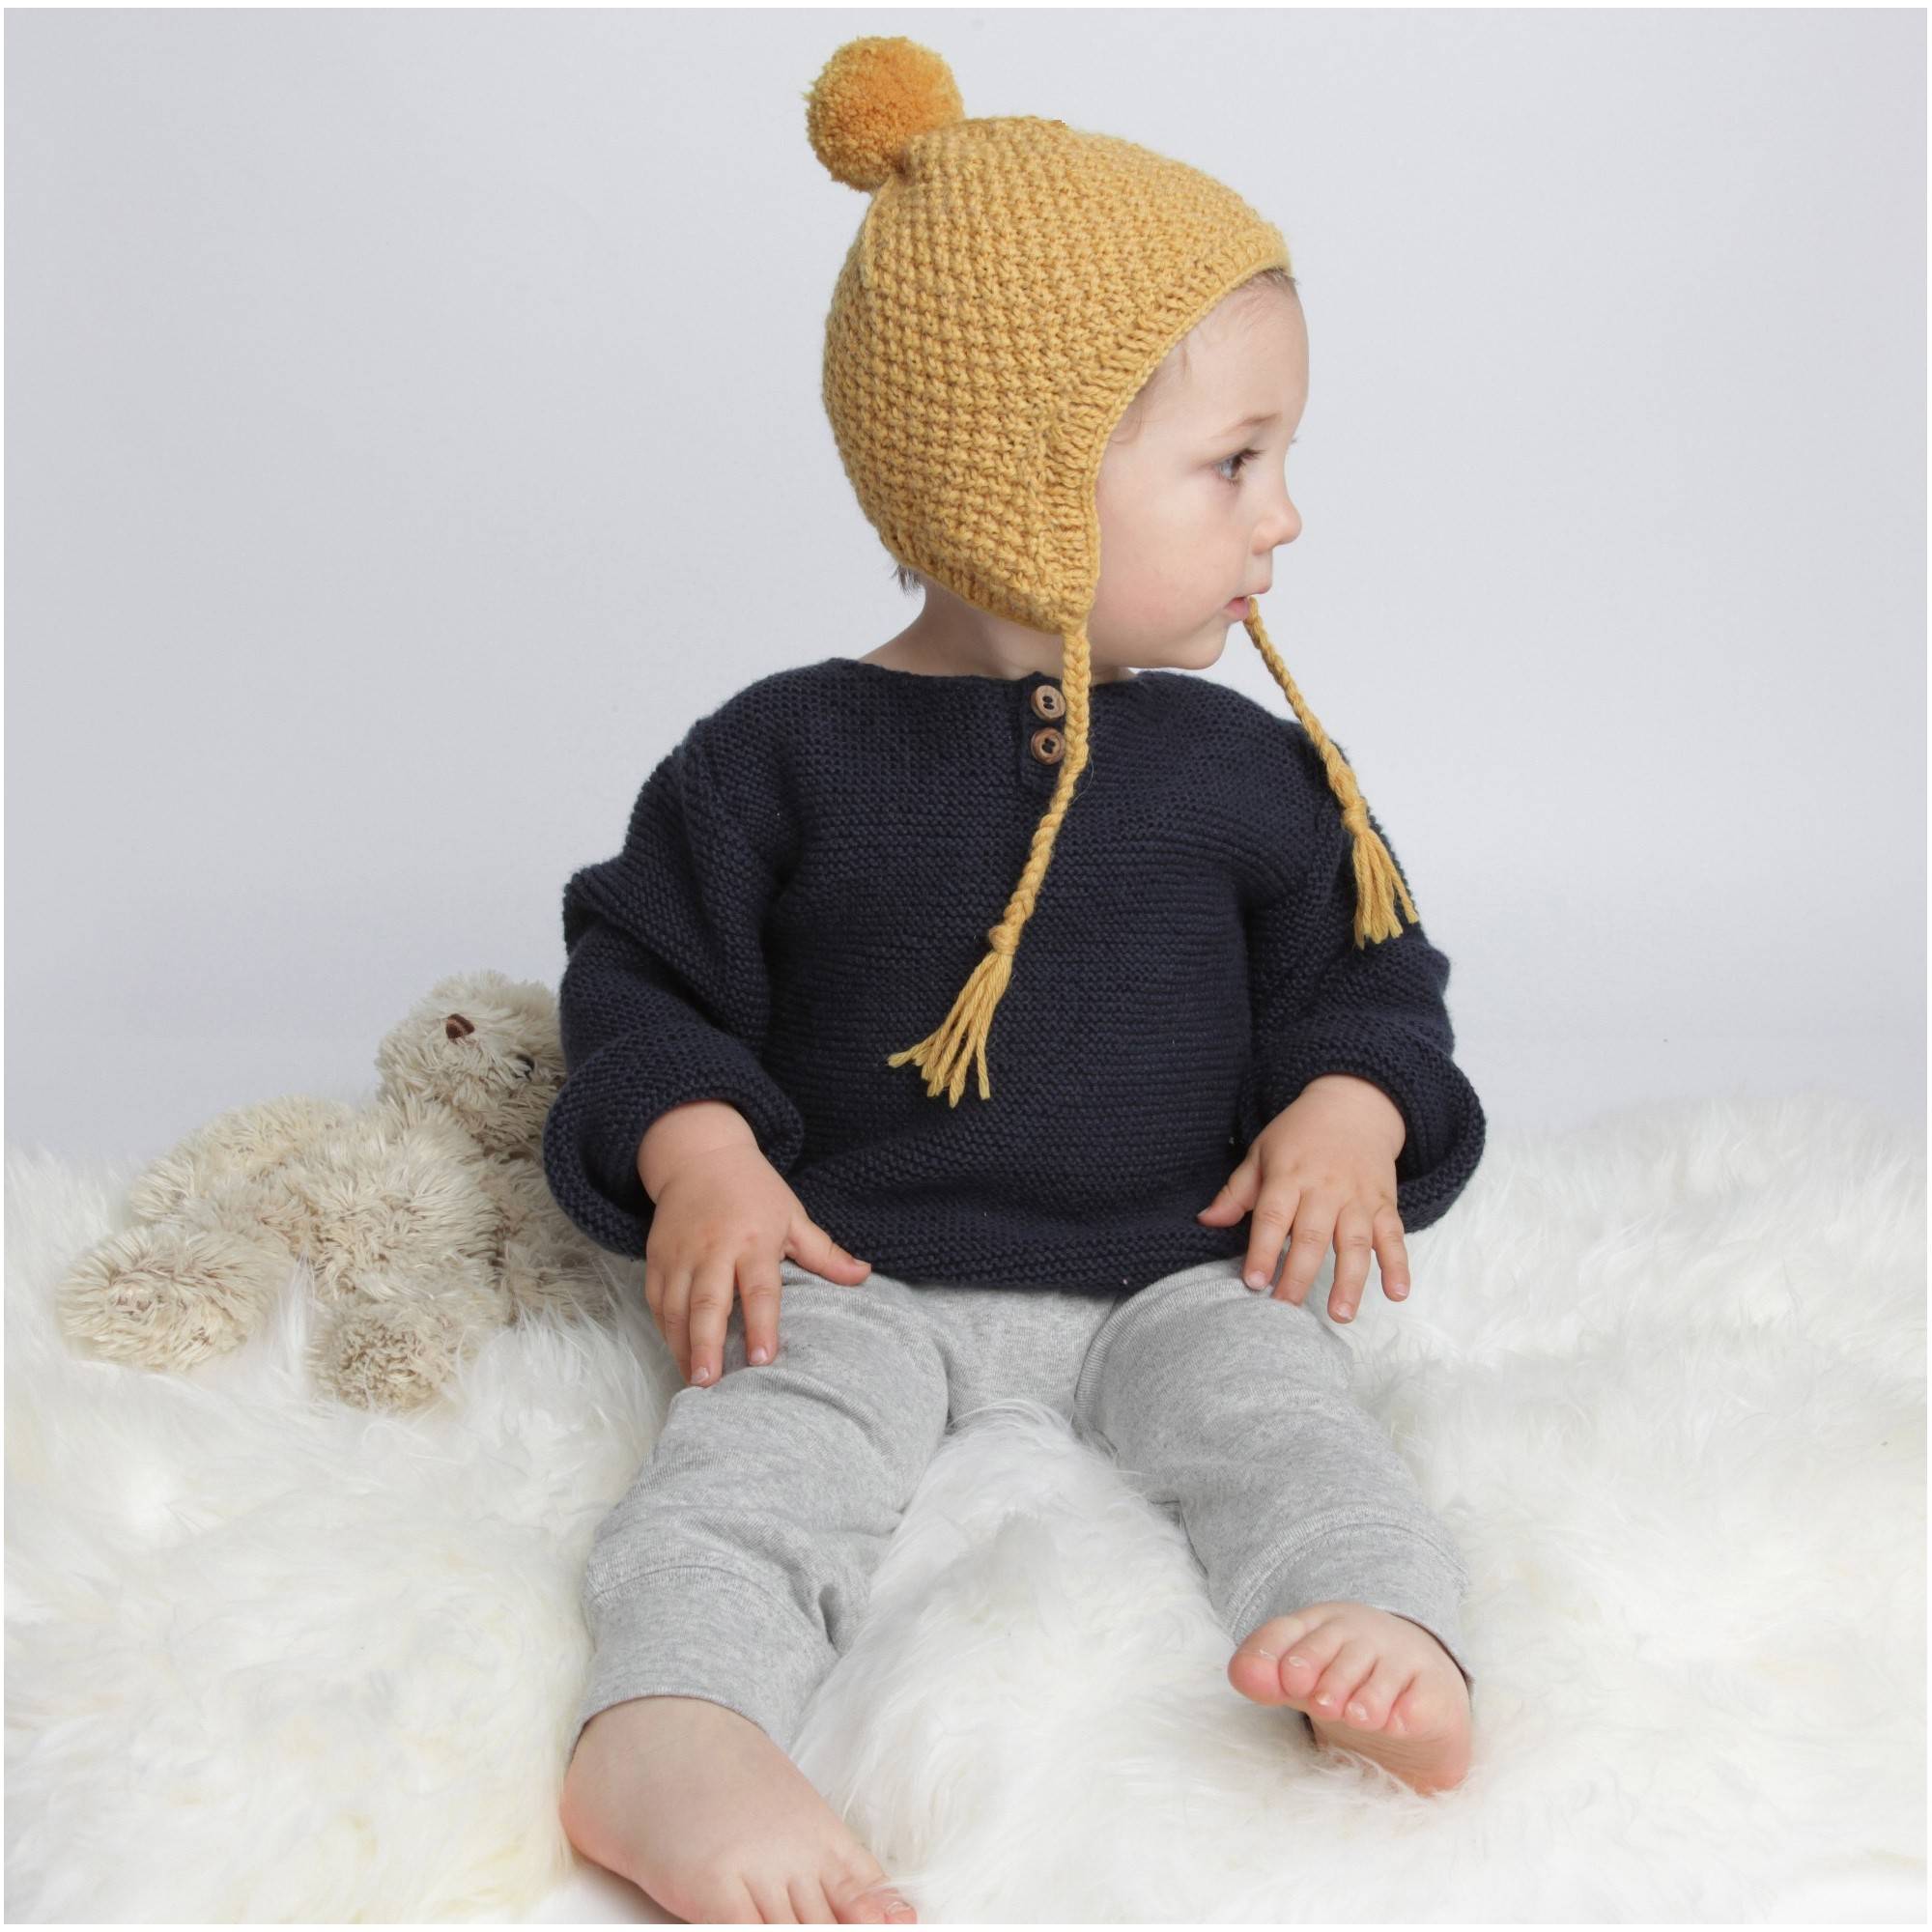 Baby peruvian cap knitted in moss stitch made from wool and alpaca - Yellow - Worn